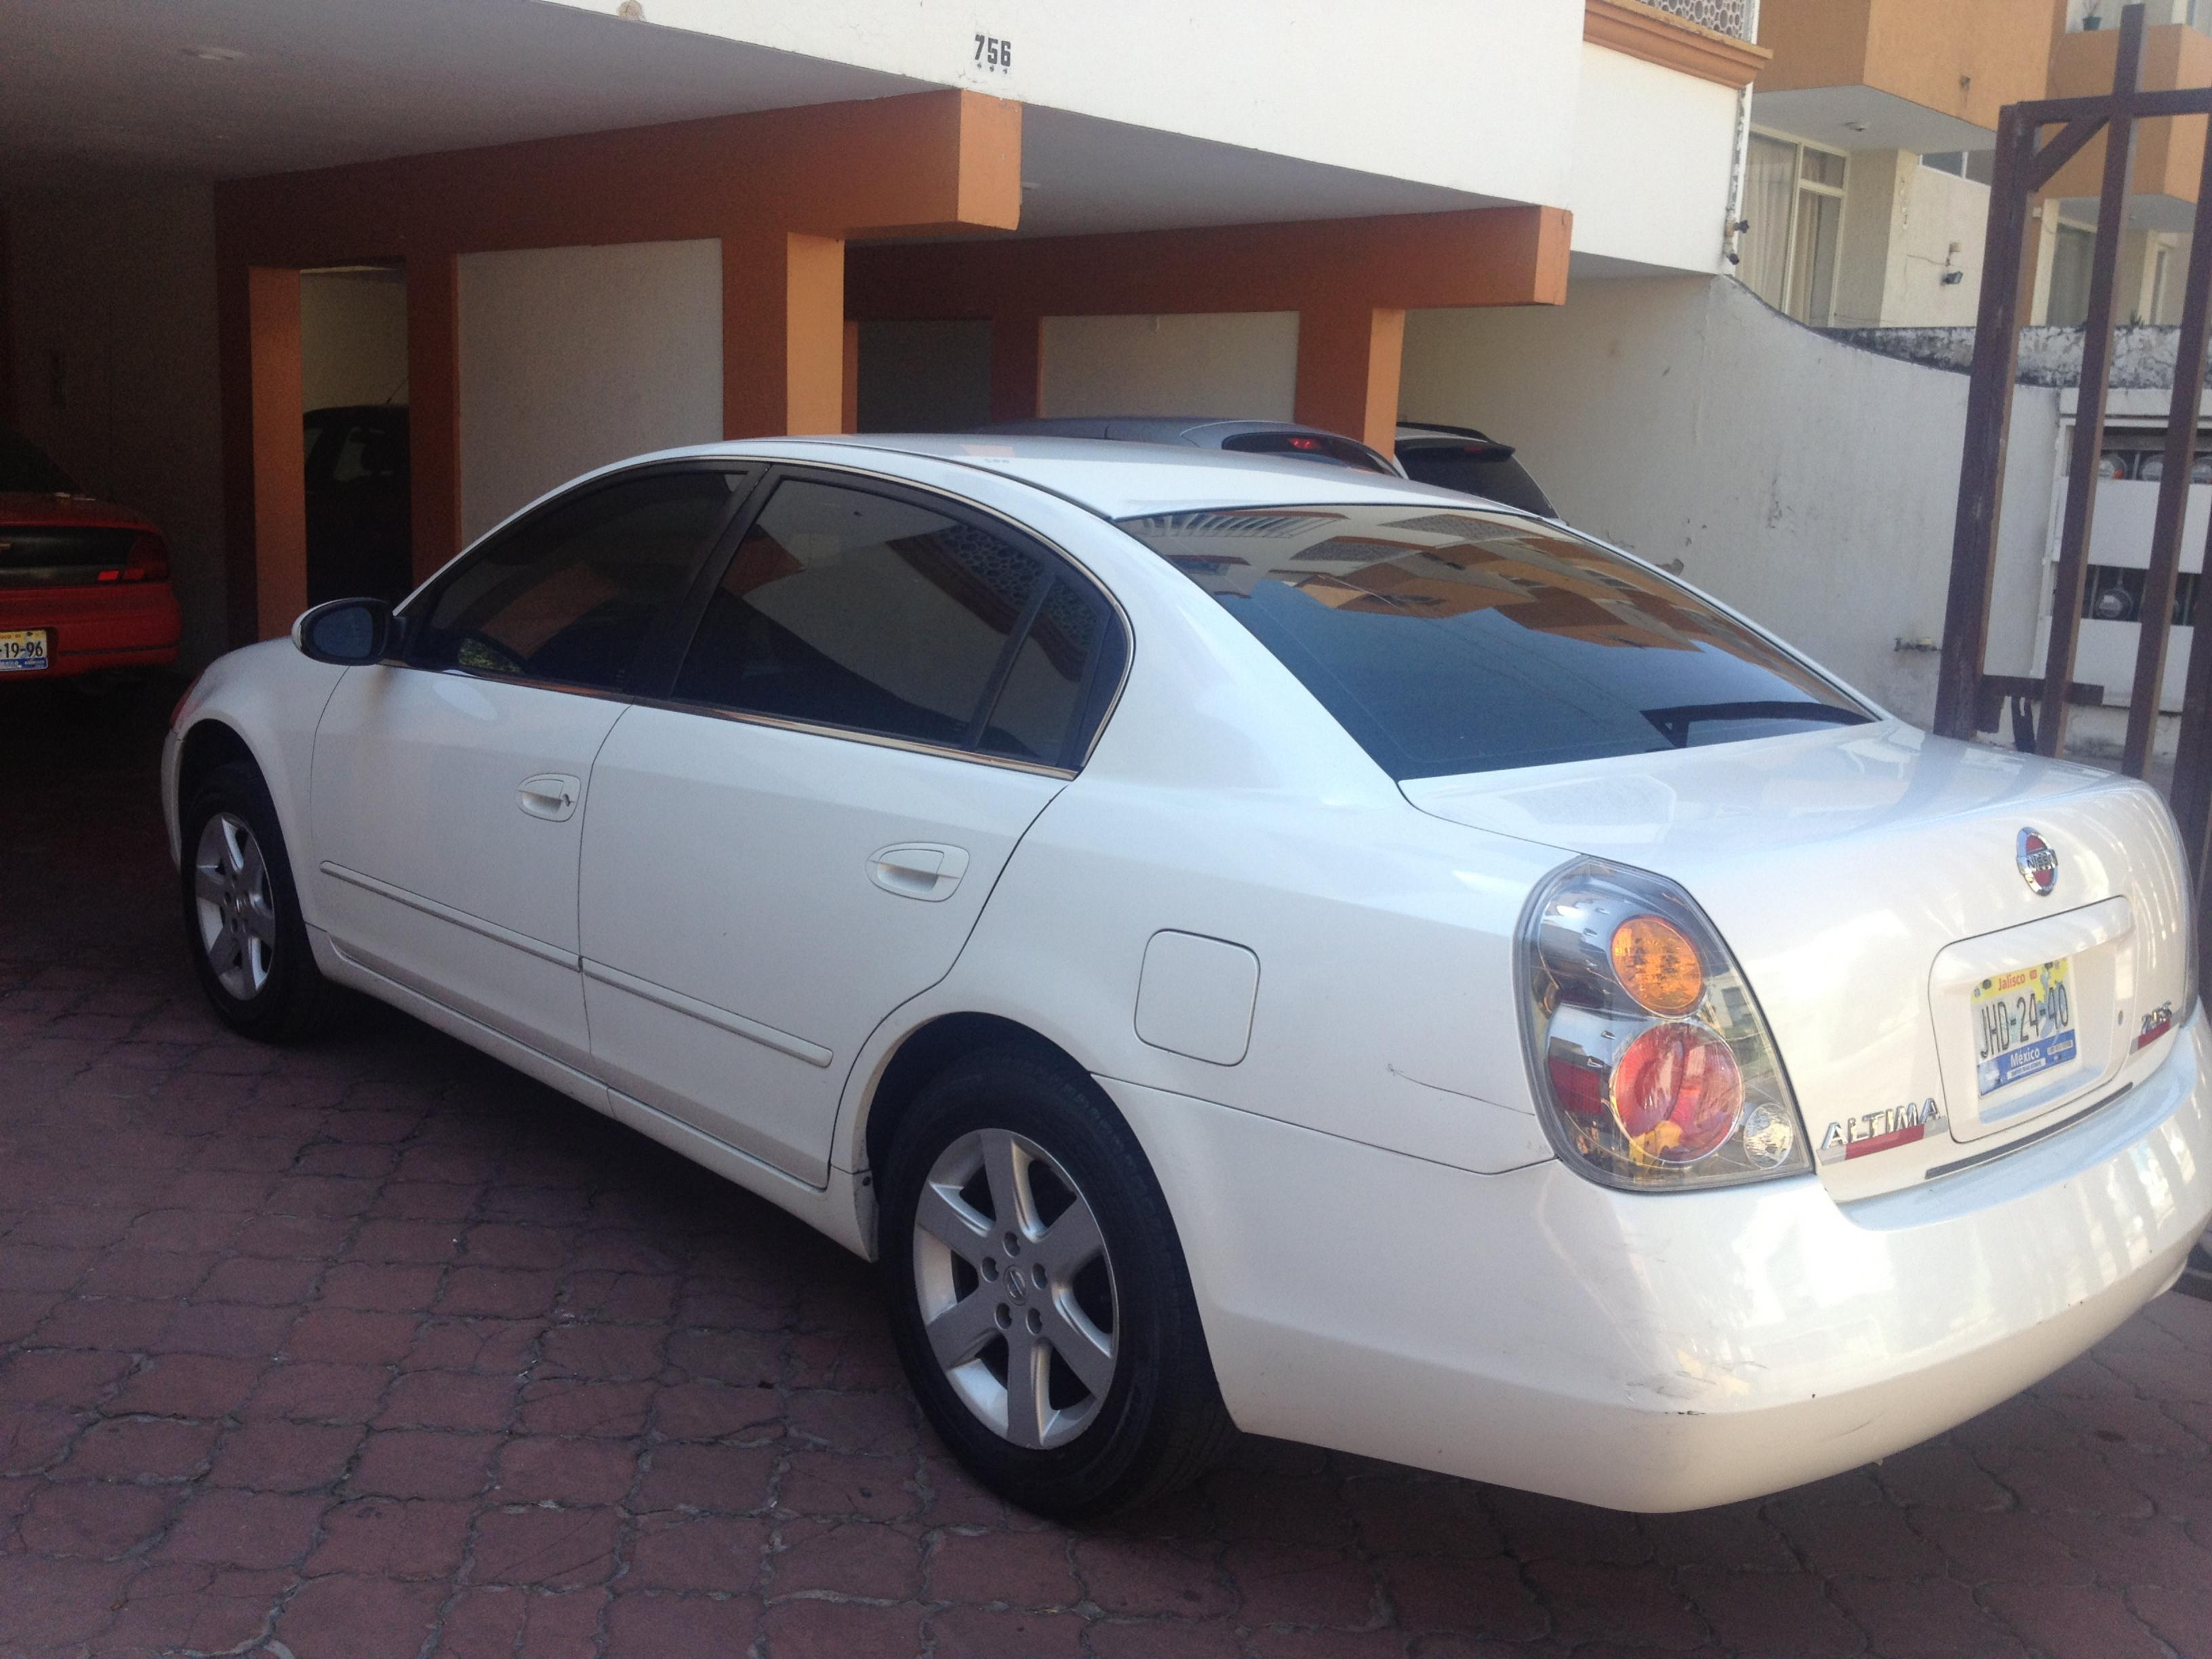 2012 Nissan Altima For Sale >> Nissan Altima 2003 | UAG Medical School Classifieds